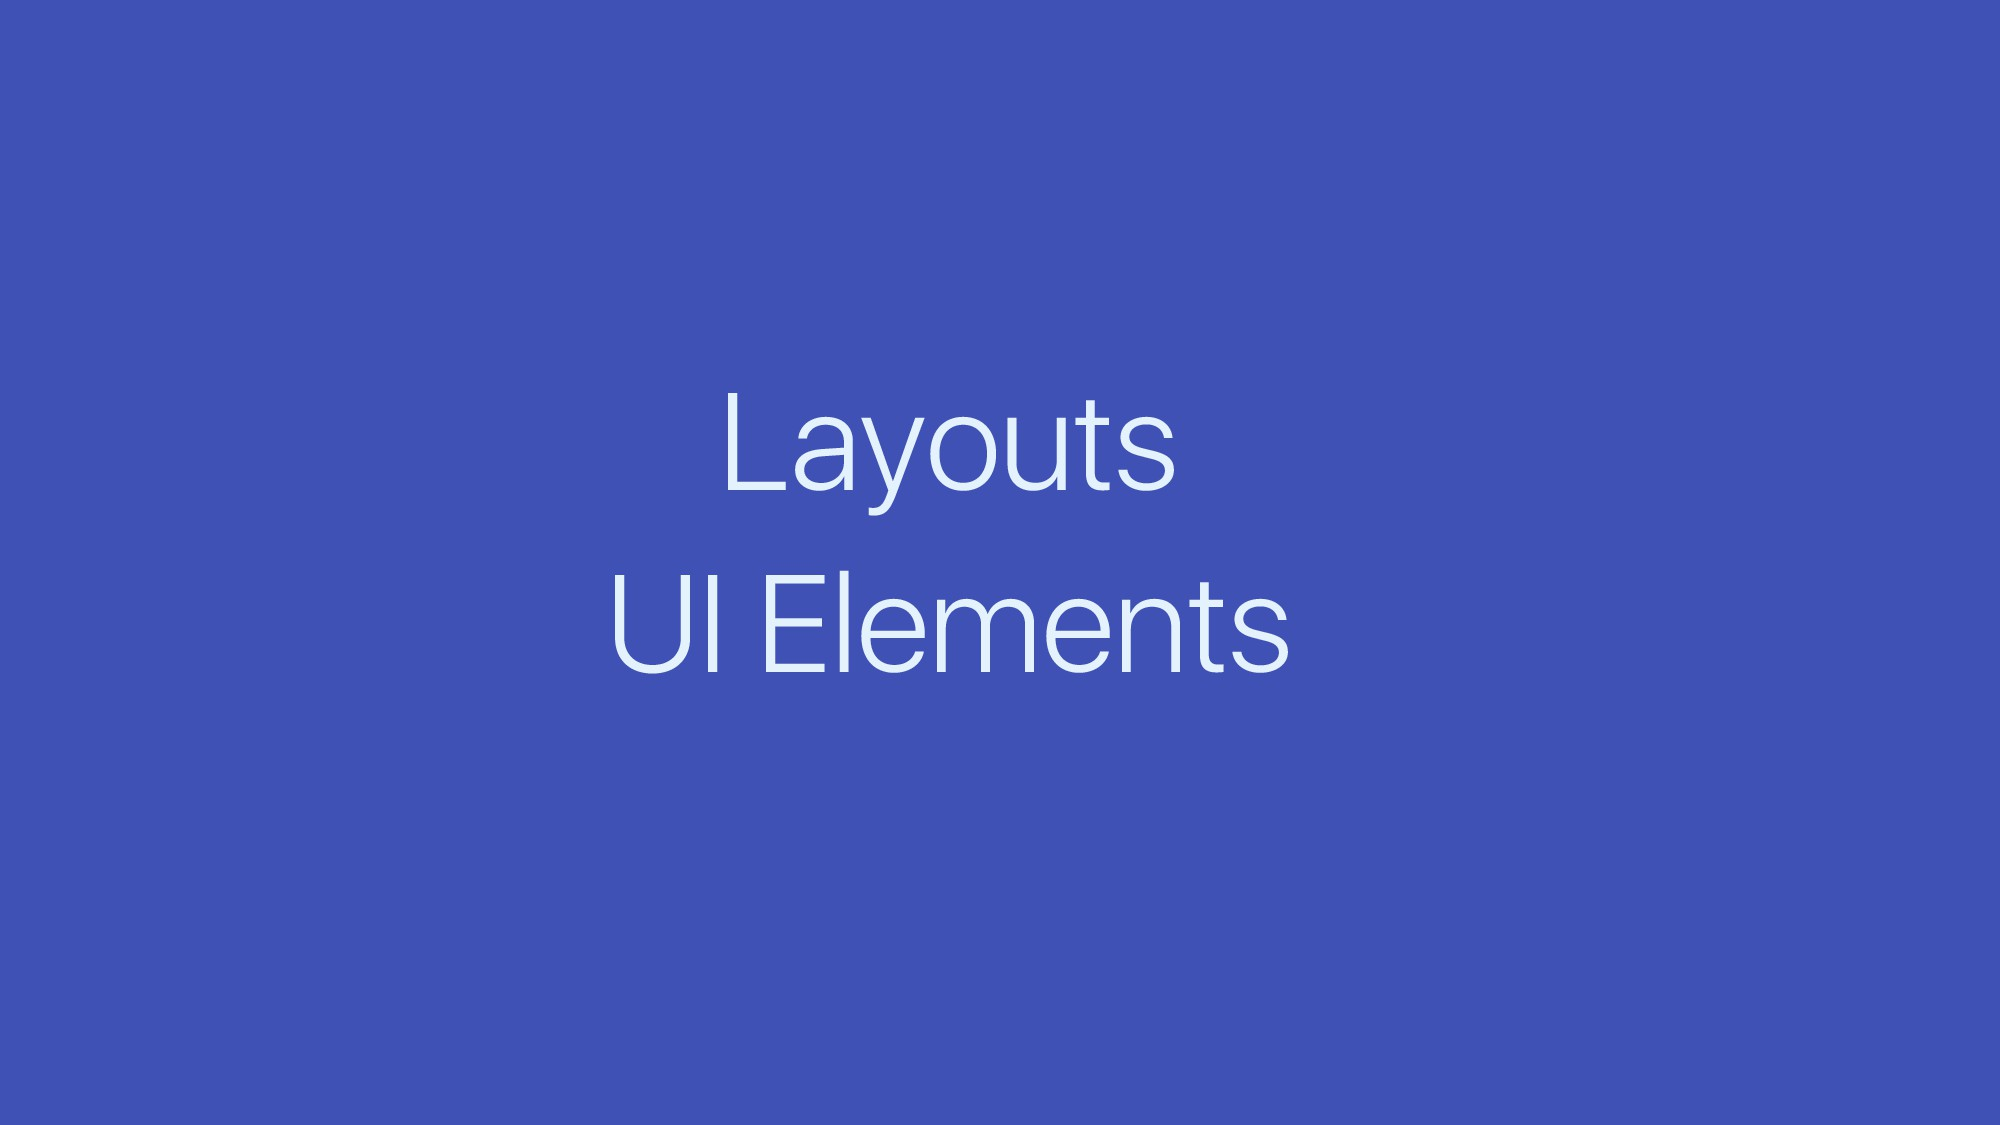 Layouts UI Elements